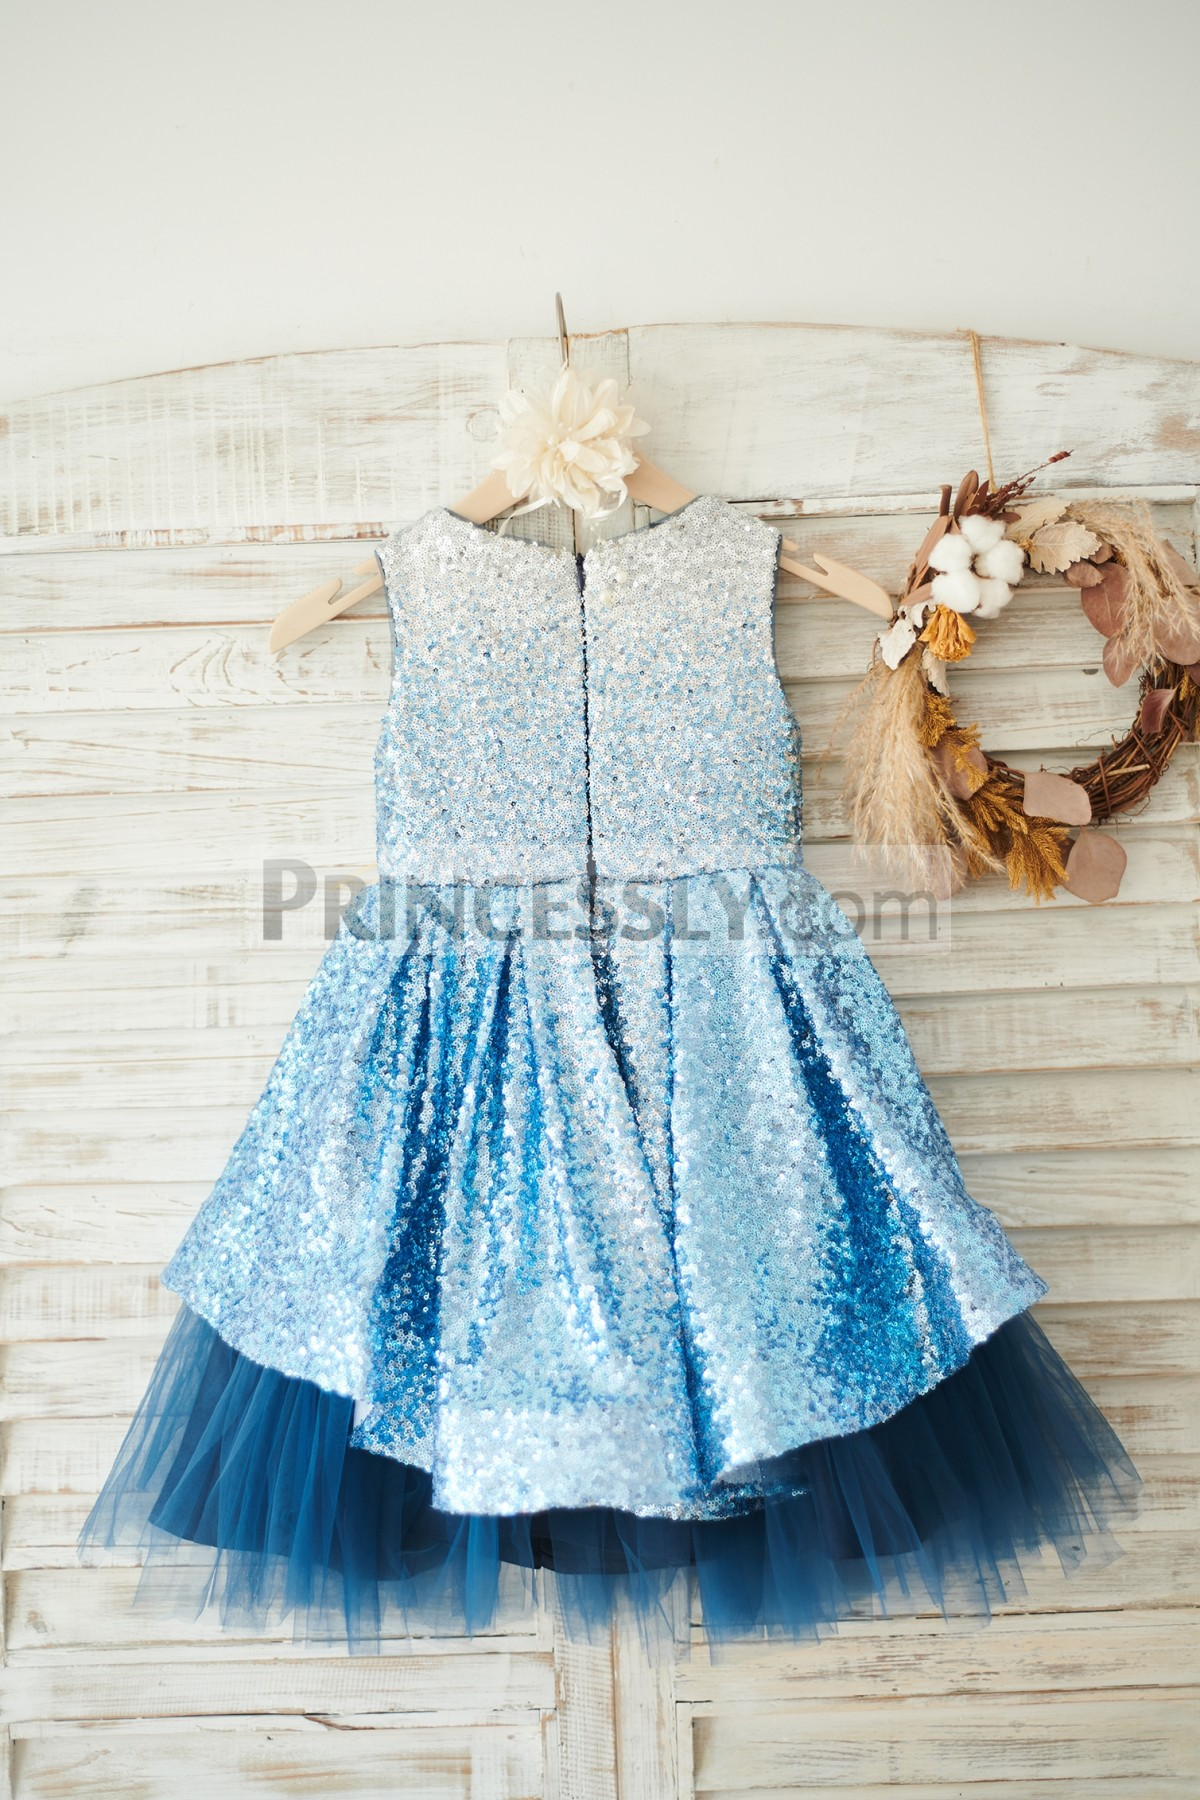 Silver/Blue Sequins Satin Tulle Wedding Little Girl Dress